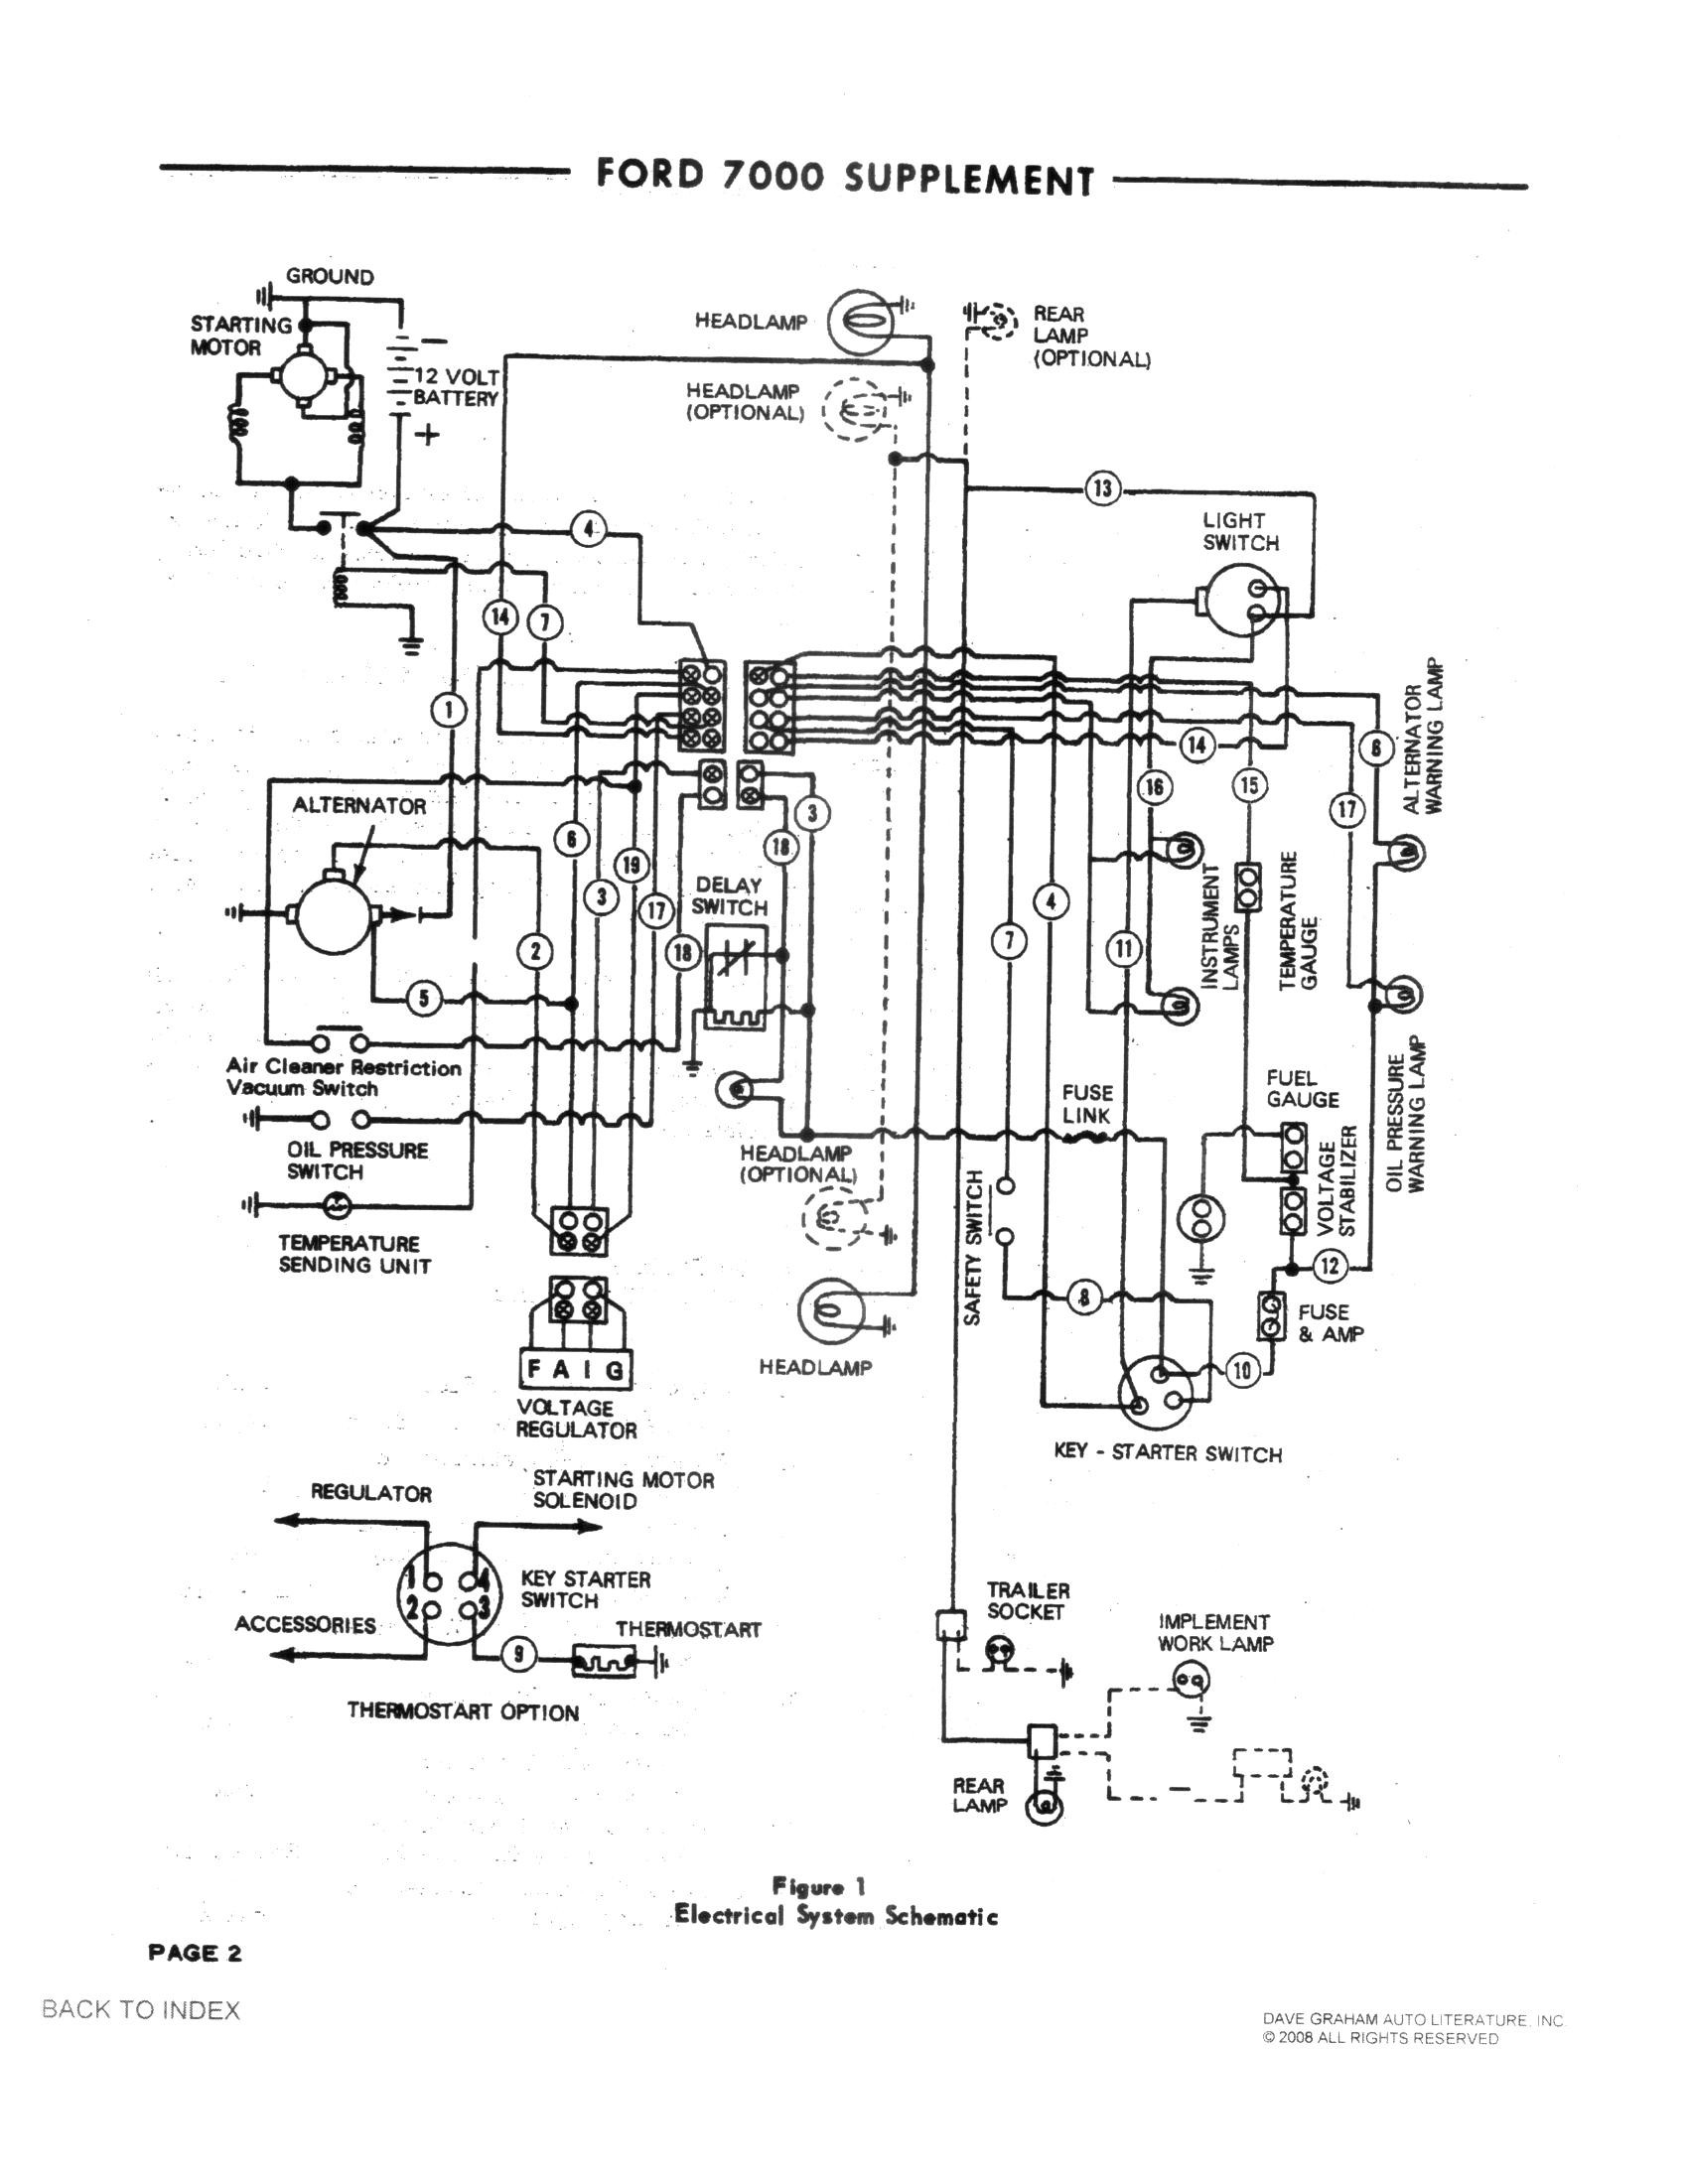 Alternator Wiring Diagram Chevy New Voltage Regulator Wiring Diagram - Voltage Regulator Wiring Diagram